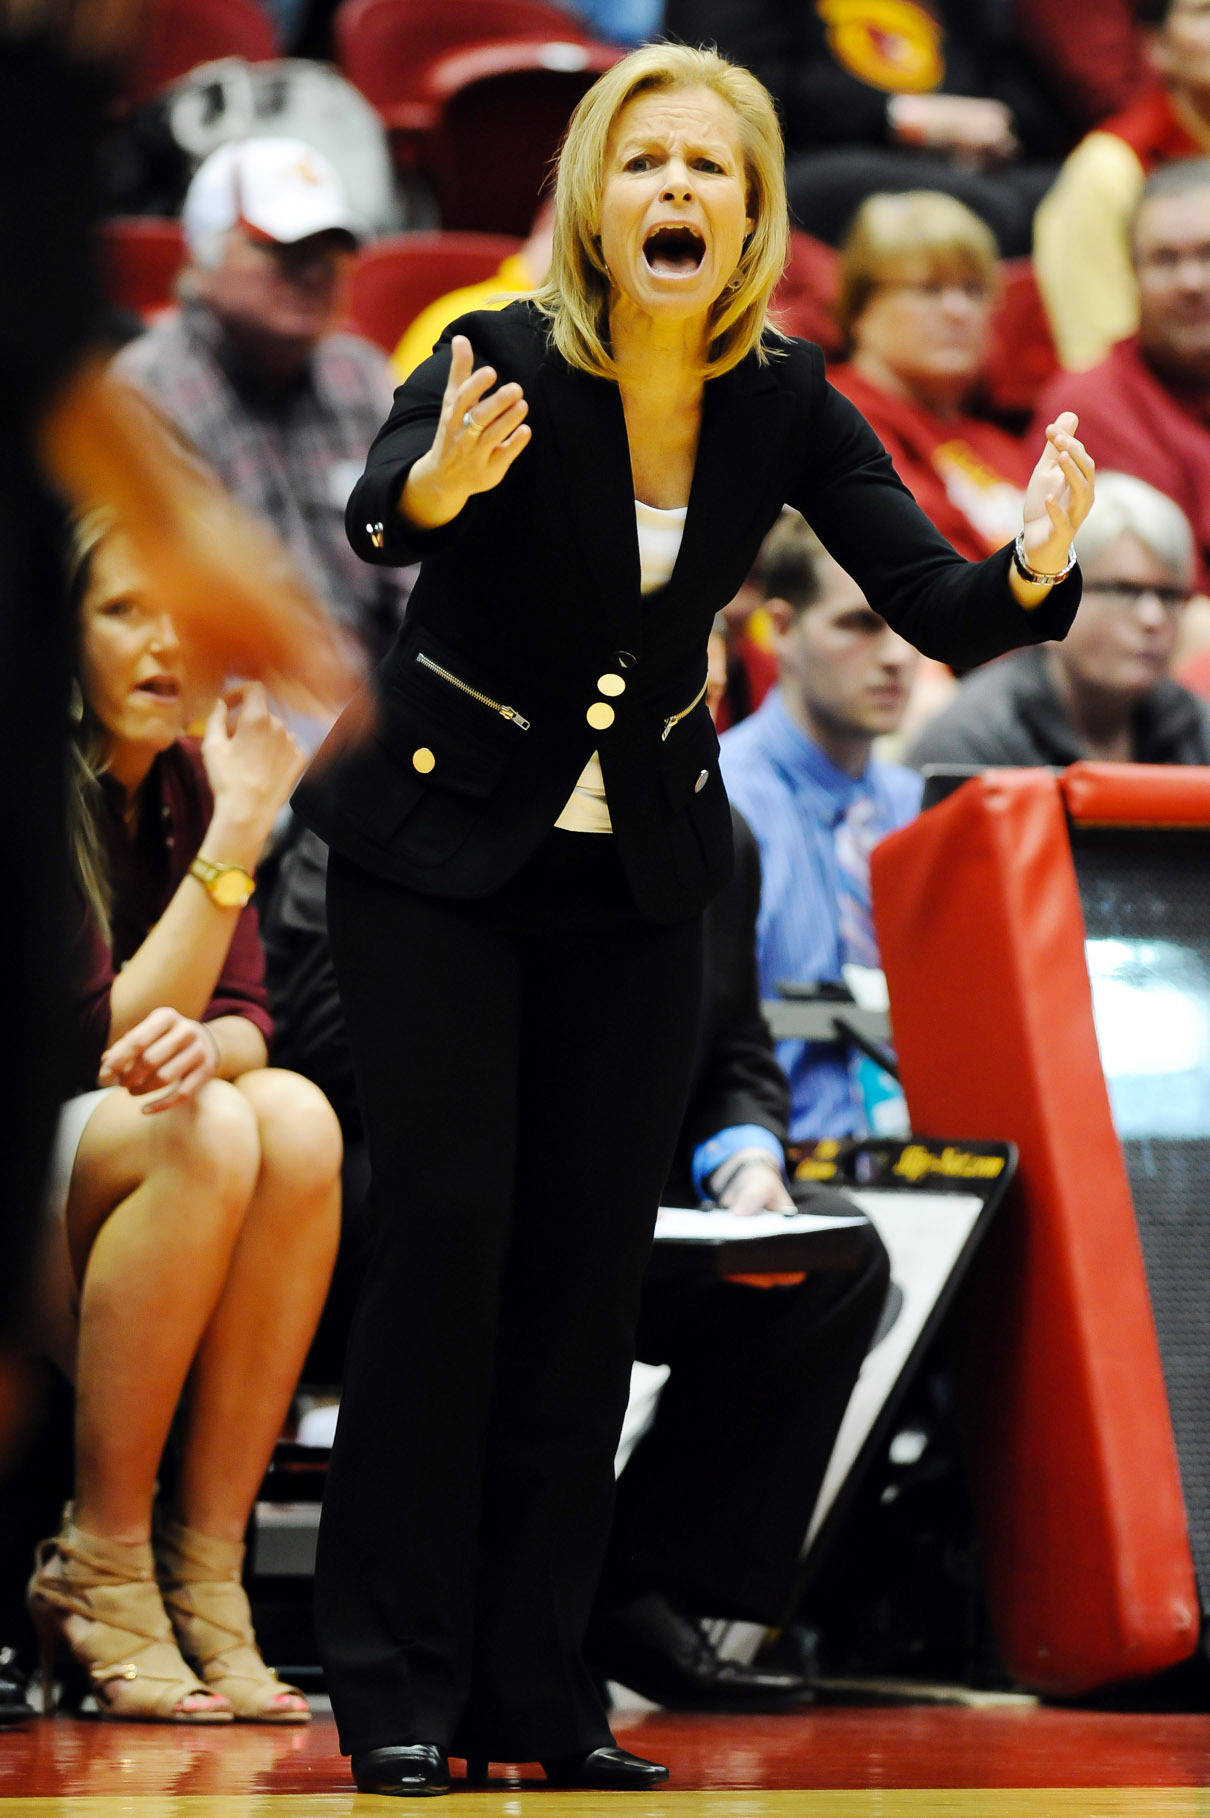 Mar 22, 2014; Ames, IA, USA; Florida State Seminoles head coach Sue Semrau shouts instructions to her team against the Iowa State Cyclones. Mandatory Credit: Steven Branscombe-USA TODAY Sports